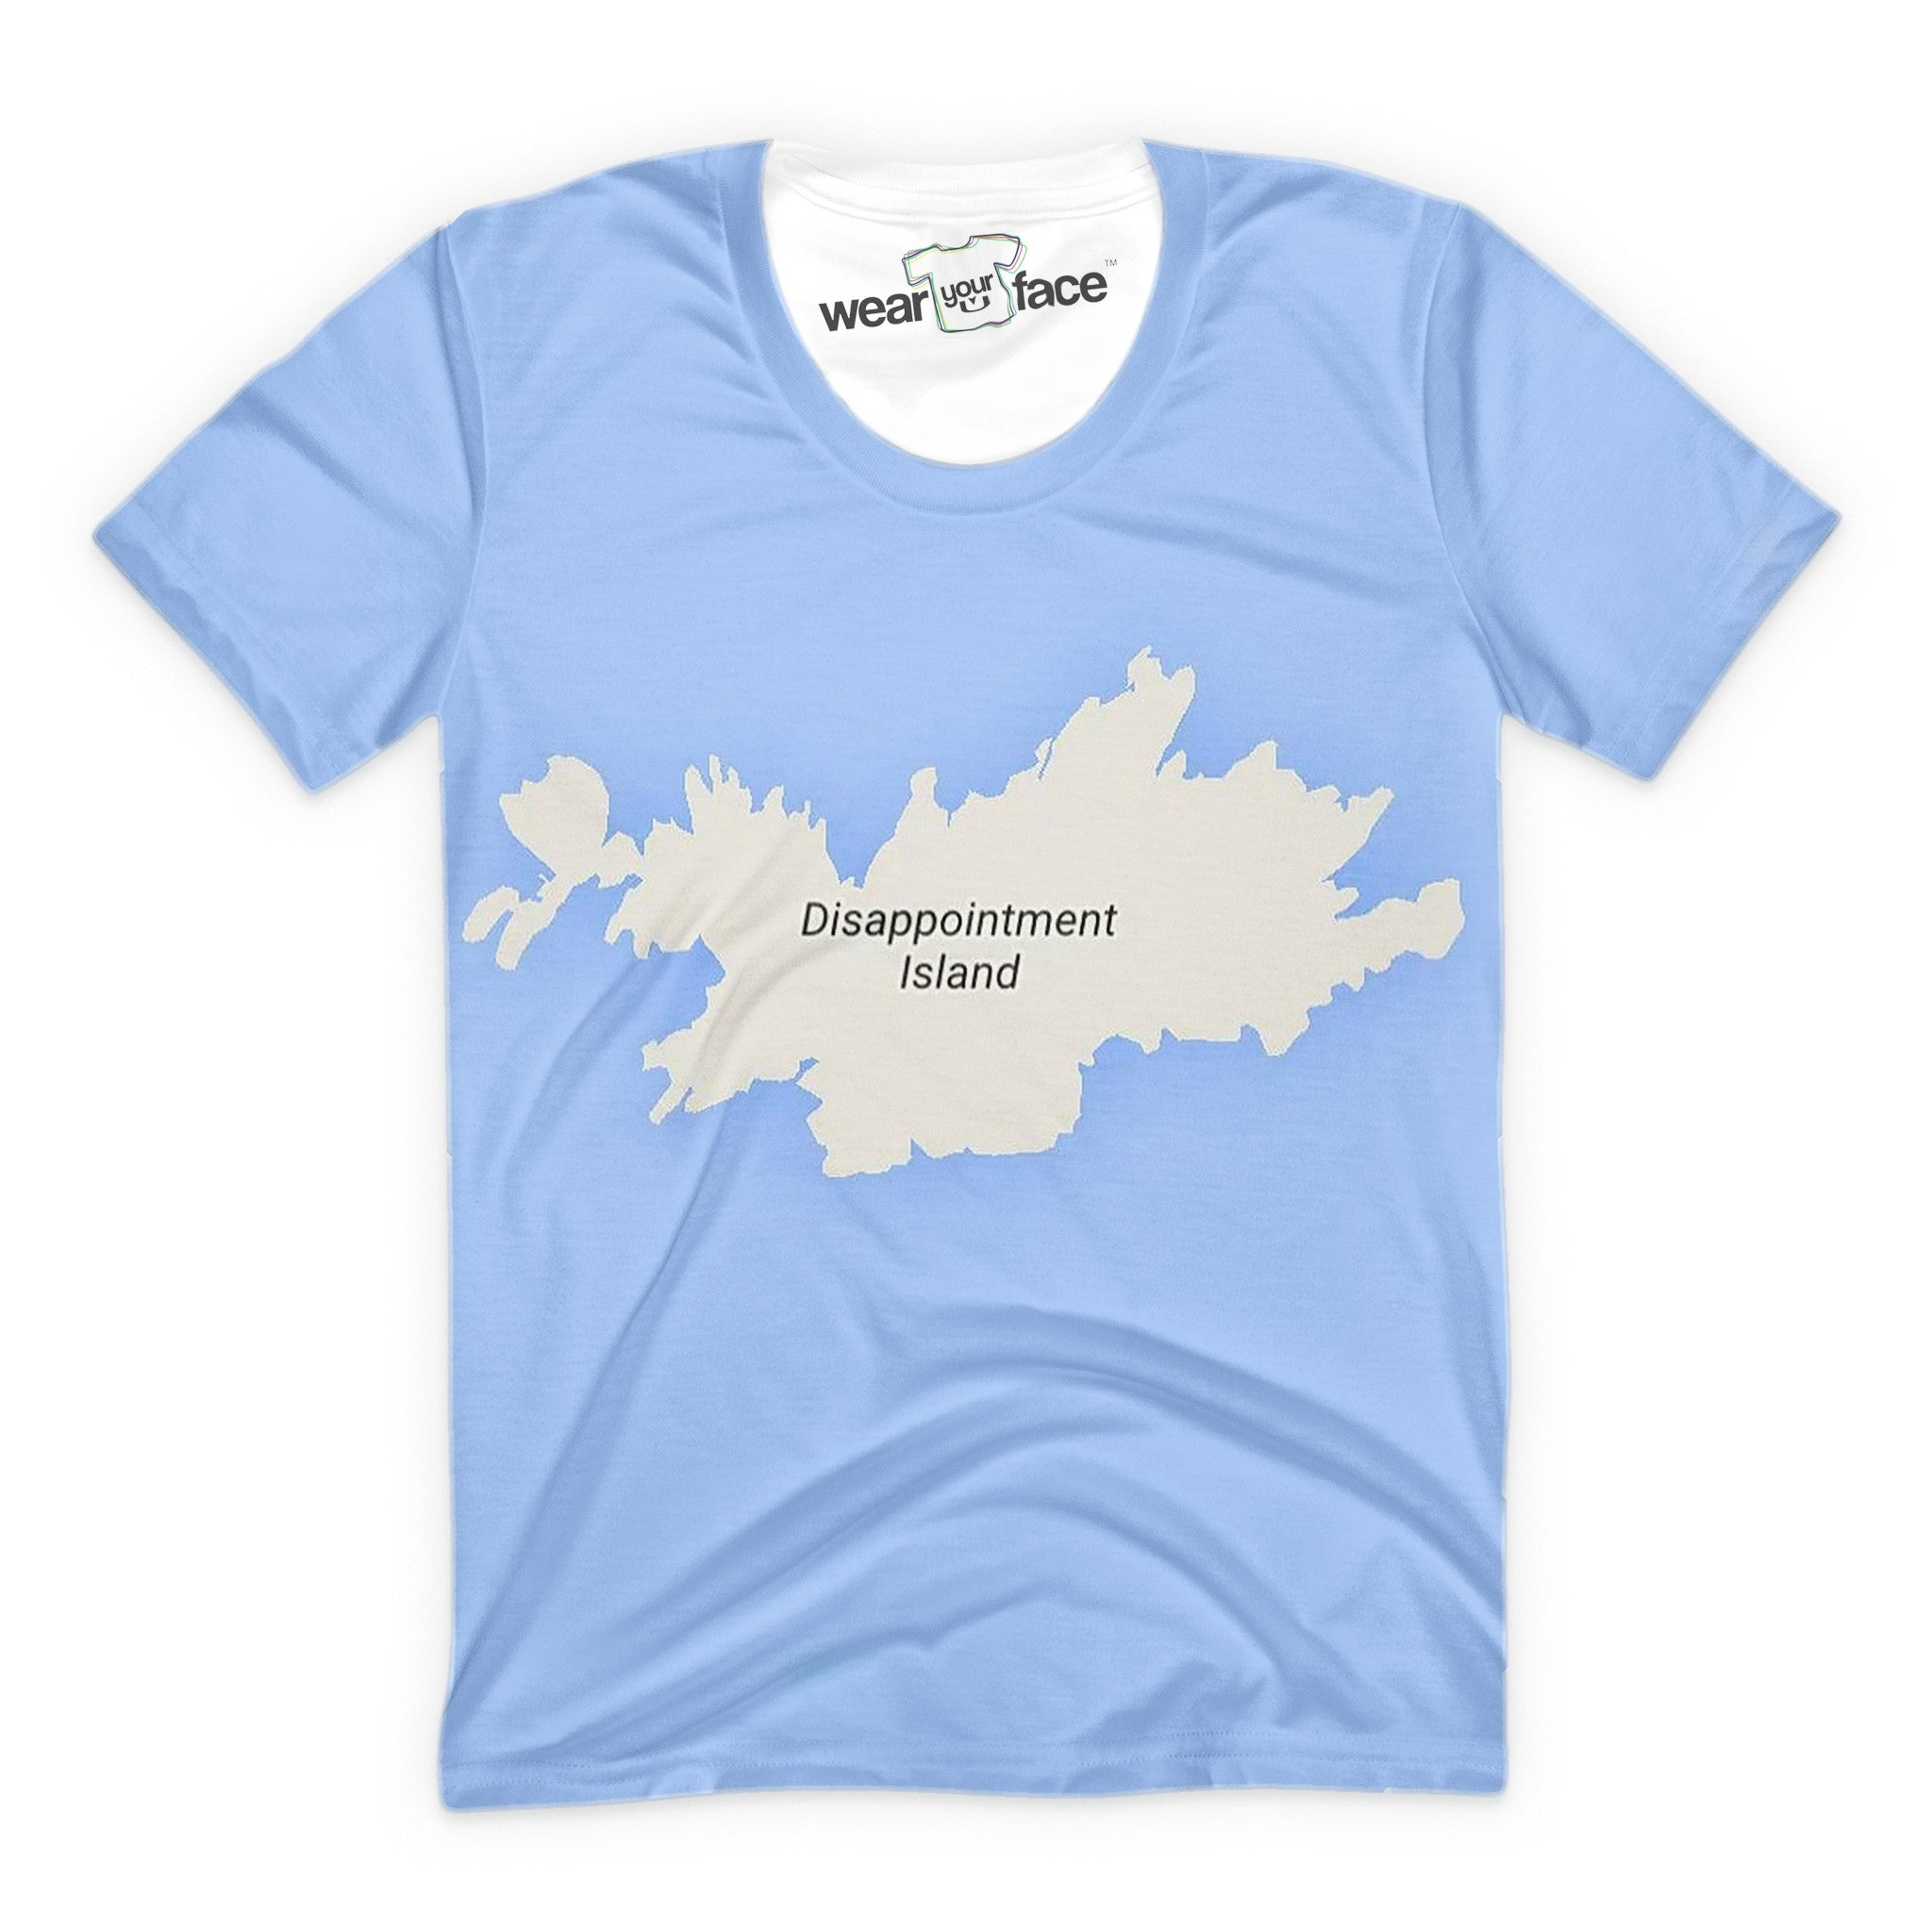 Disappointment Island T-Shirt – WearYourFace 4e491d6af